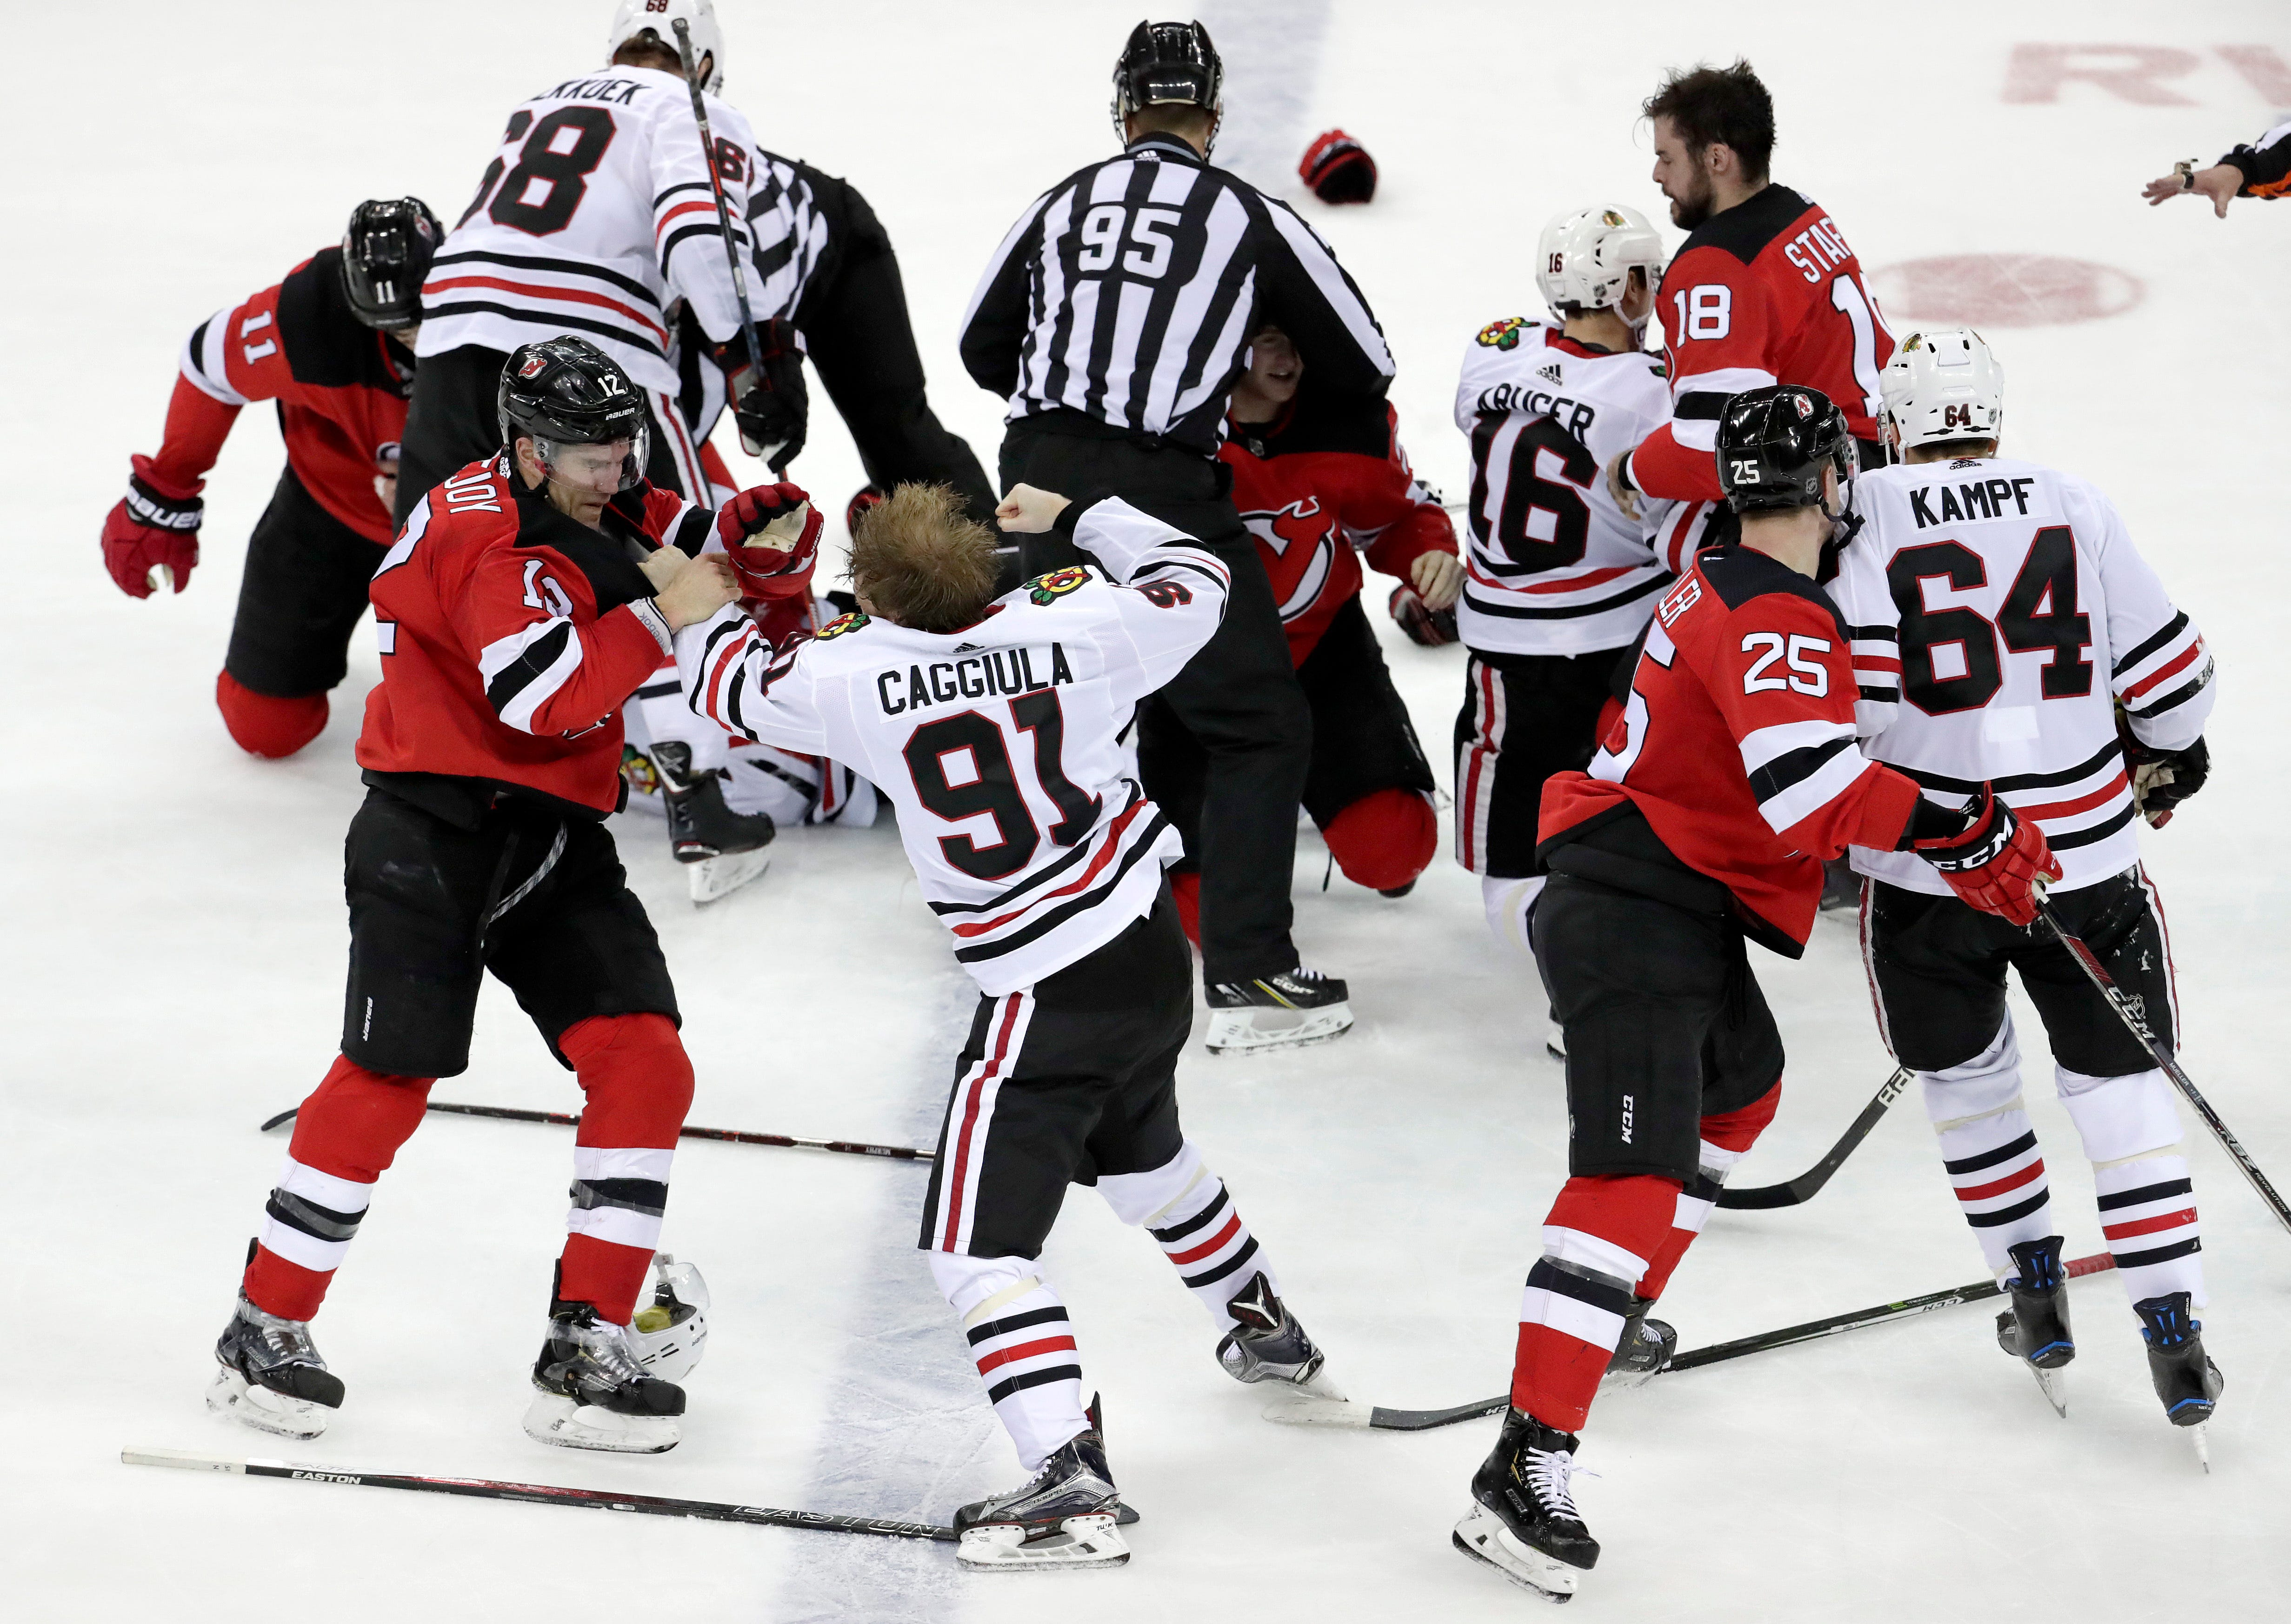 Palmieri, Coleman score 2, Devils tally 8 beating Chicago